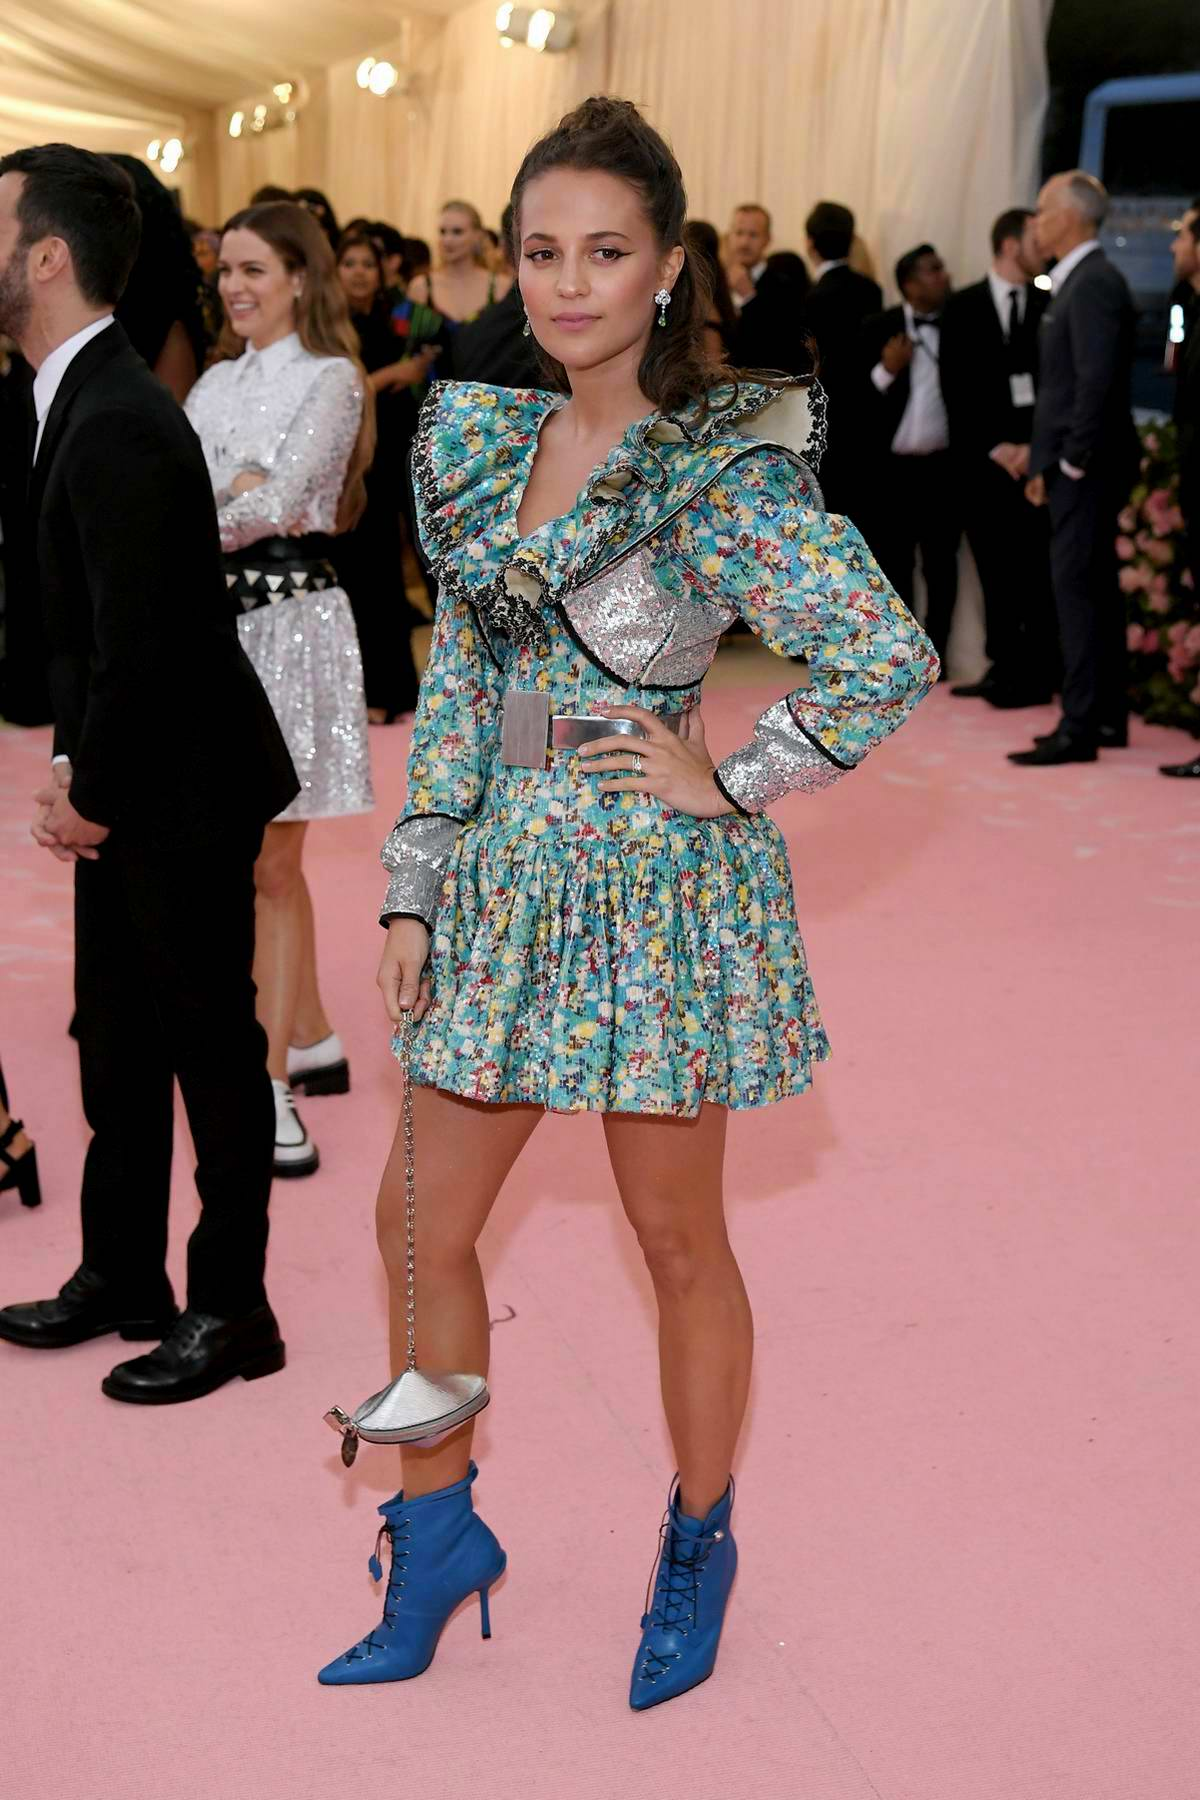 Alicia Vikander attends The 2019 Met Gala Celebrating Camp: Notes on Fashion in New York City